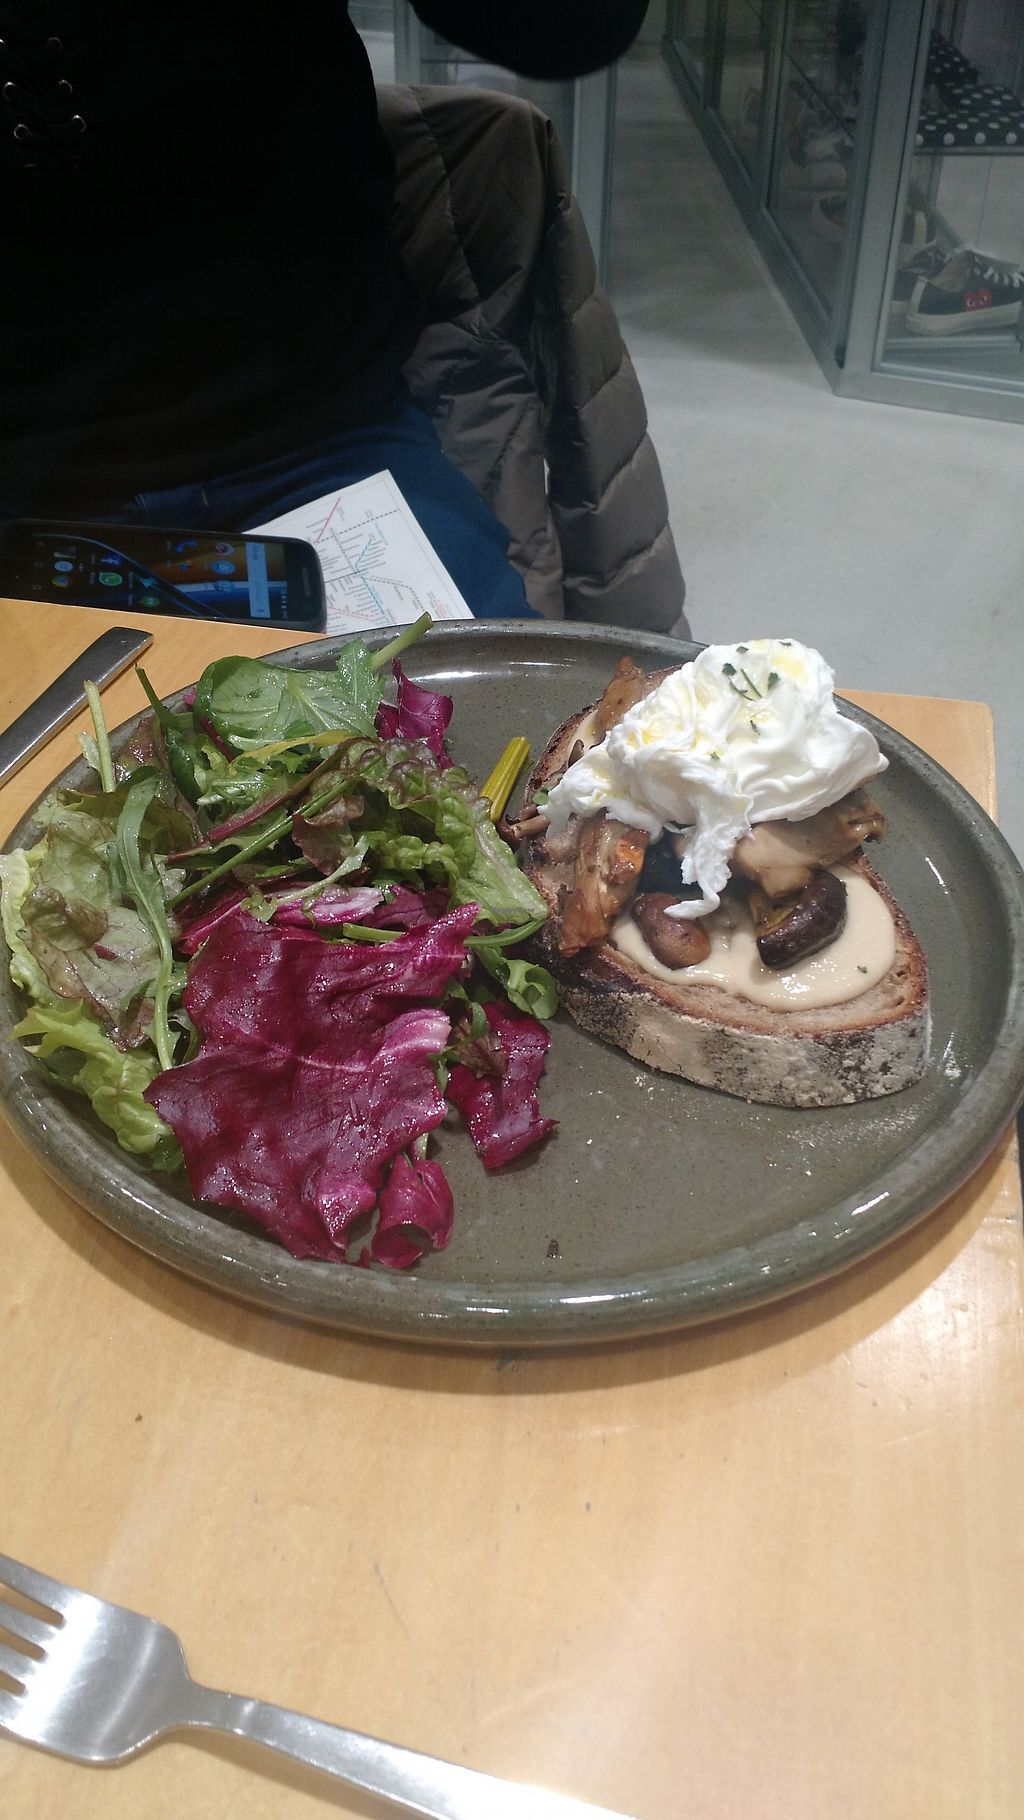 """Photo of Rose Bakery  by <a href=""""/members/profile/paulinadana"""">paulinadana</a> <br/>Bread with cheese and mushrooms. Comes with salad. Good for vegetarians, not vegans <br/> February 8, 2018  - <a href='/contact/abuse/image/111498/356231'>Report</a>"""